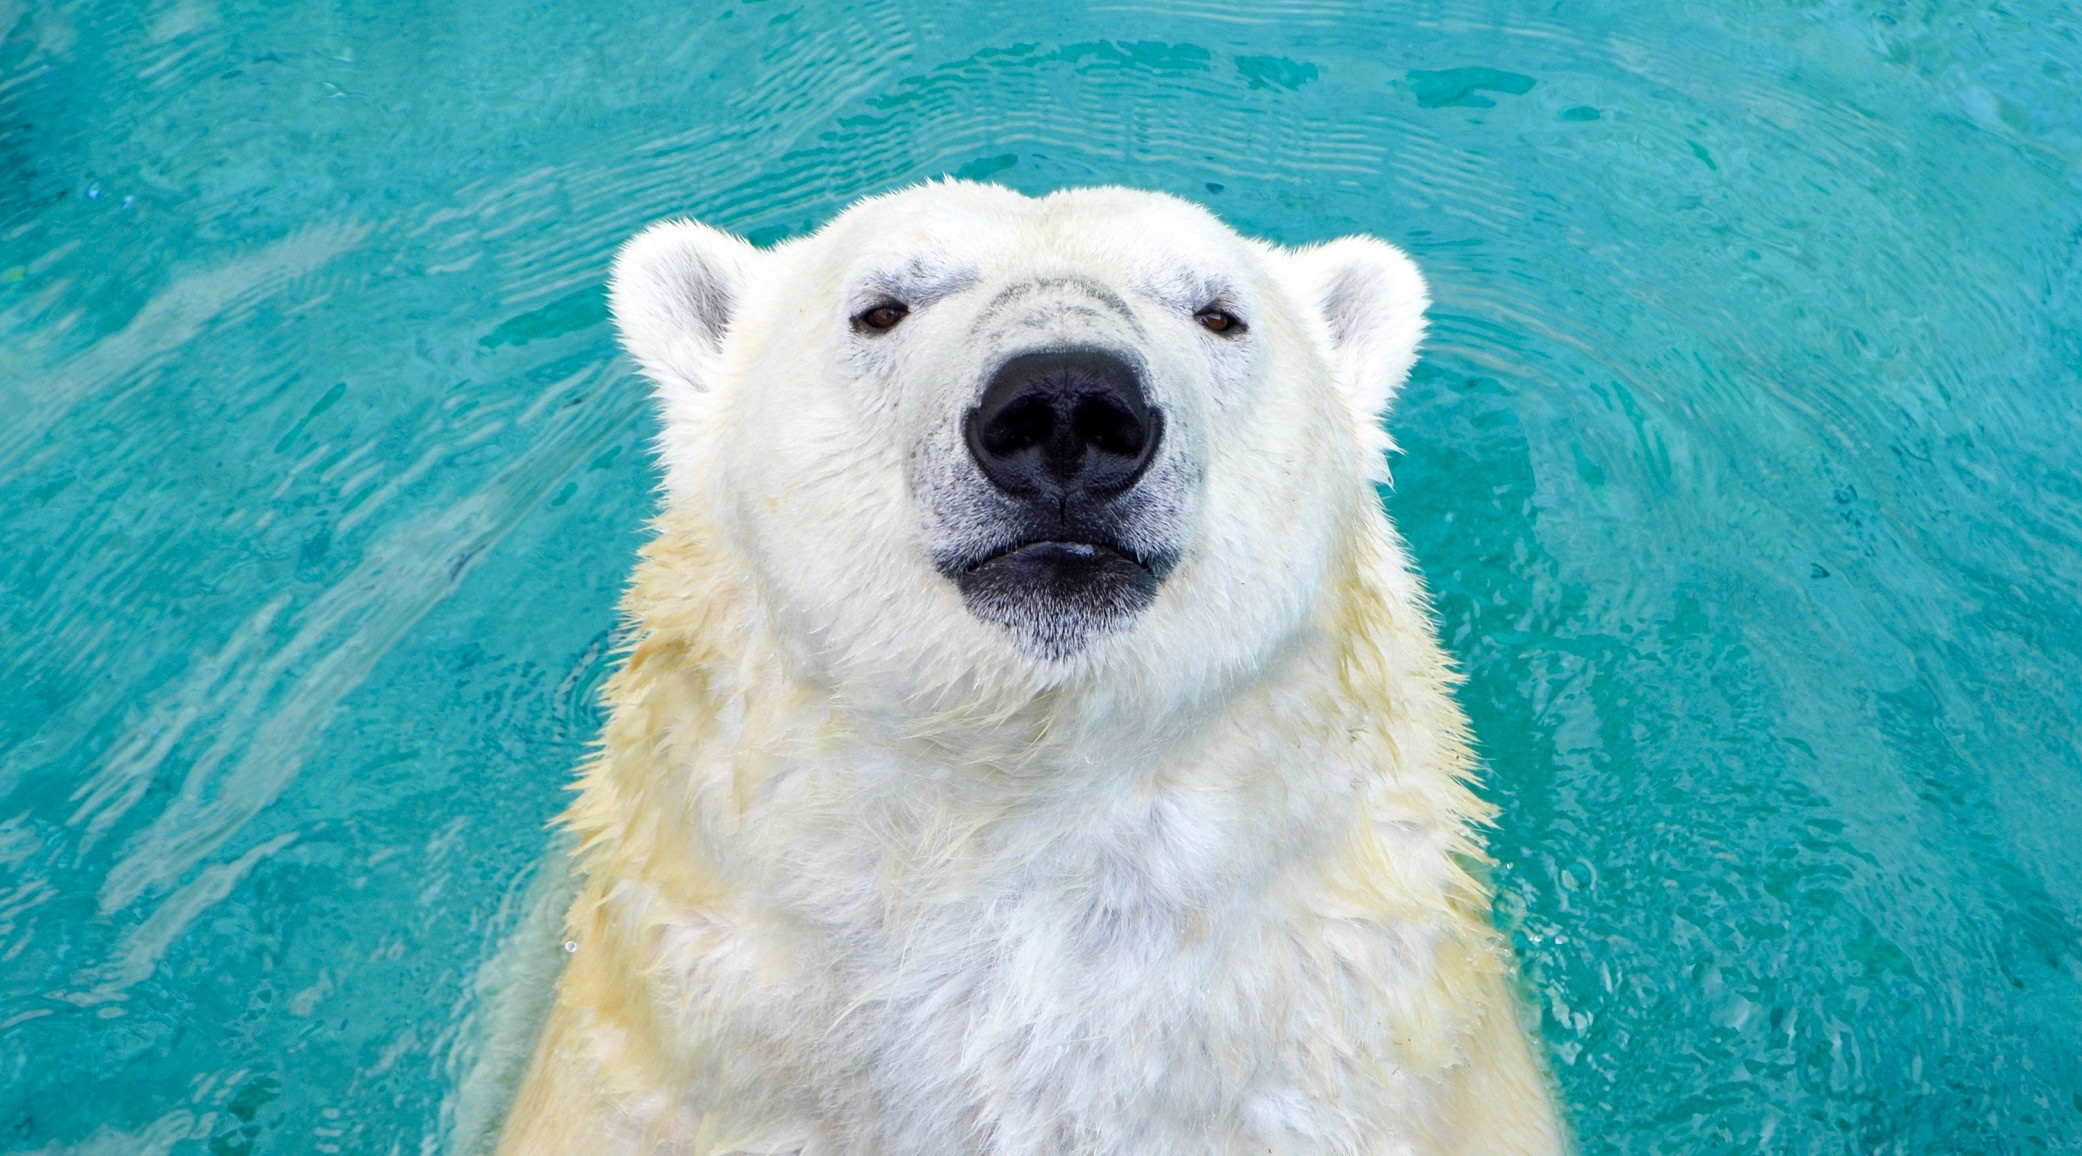 Polar bear sanctuary ontario 1